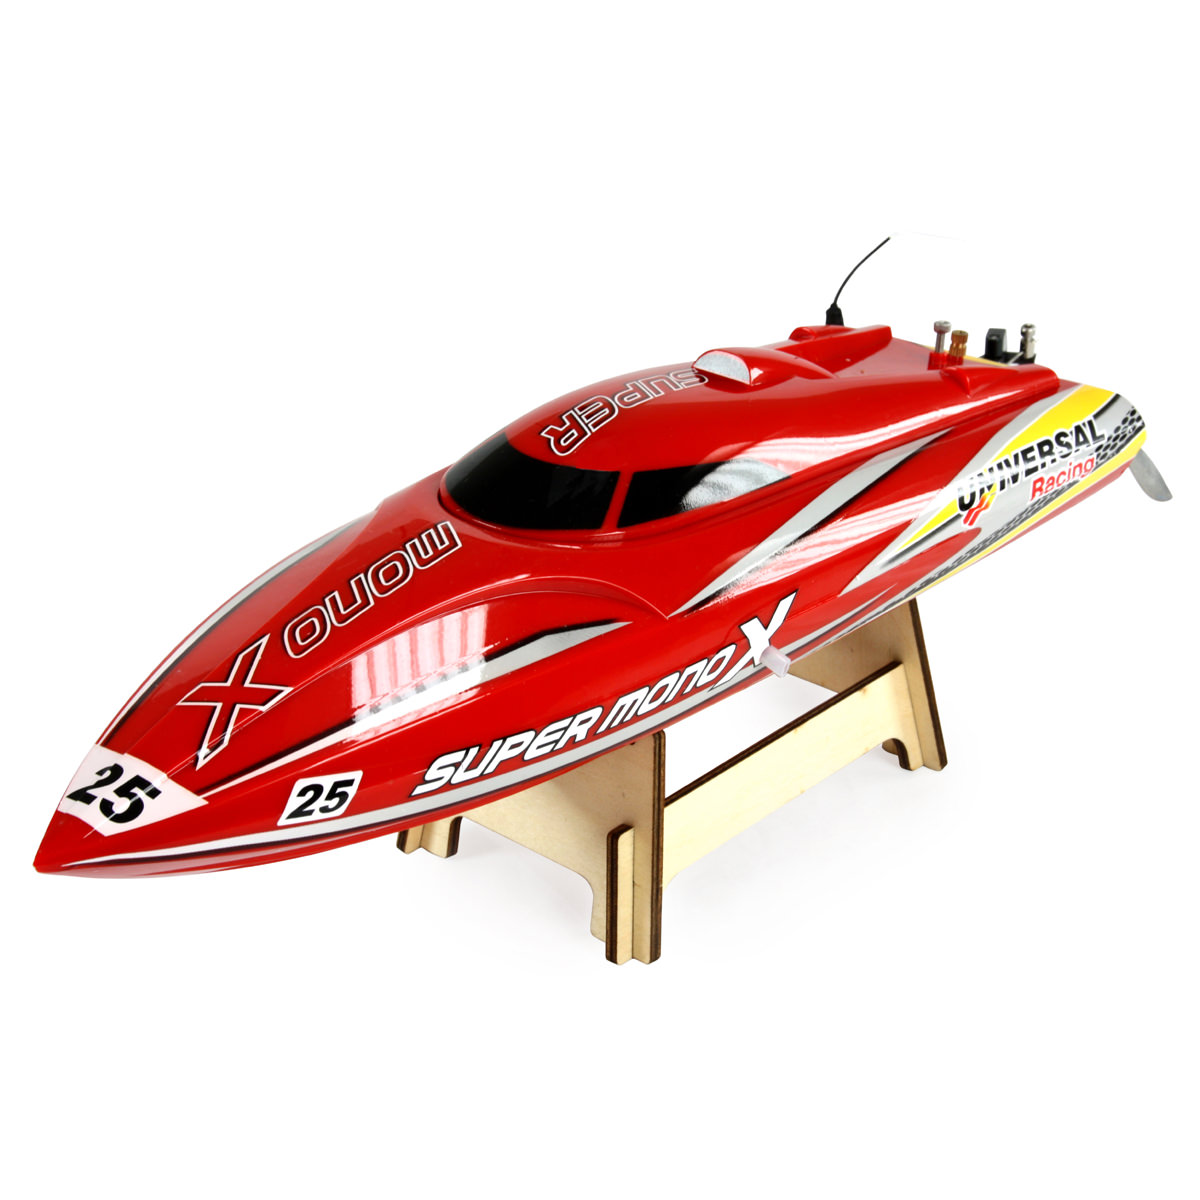 traxxas rc helicopter with Joysway 8209 Super Mono X Rc Racing Boat on Joysway 8209 Super Mono X Rc Racing Boat also Hpi115484 Baja Kraken Sidewinder X5 together with Watch likewise View further Watch.